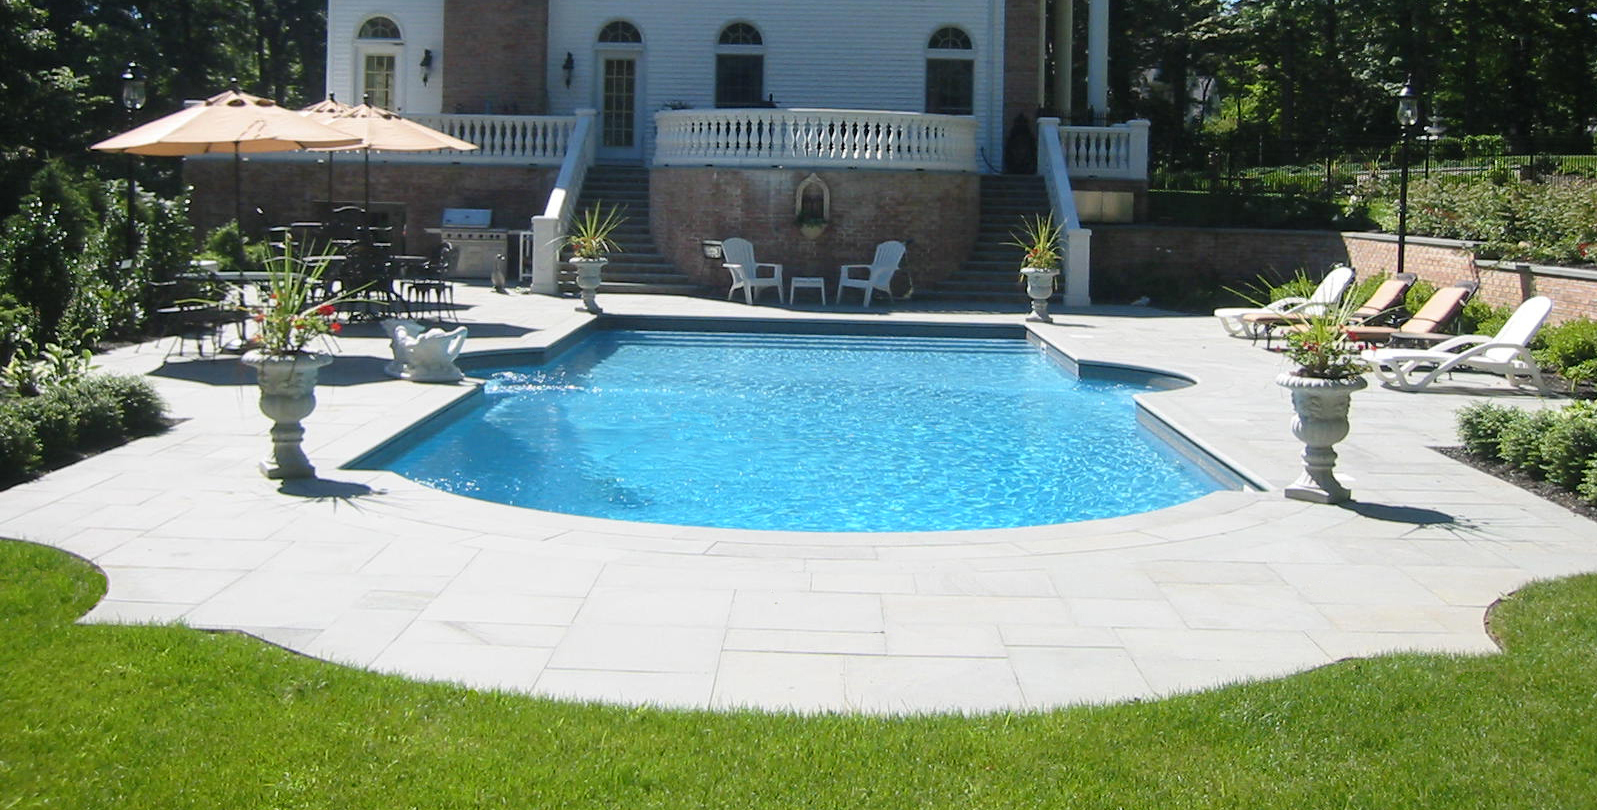 Professional pool hardscape design company in Long Island, NY